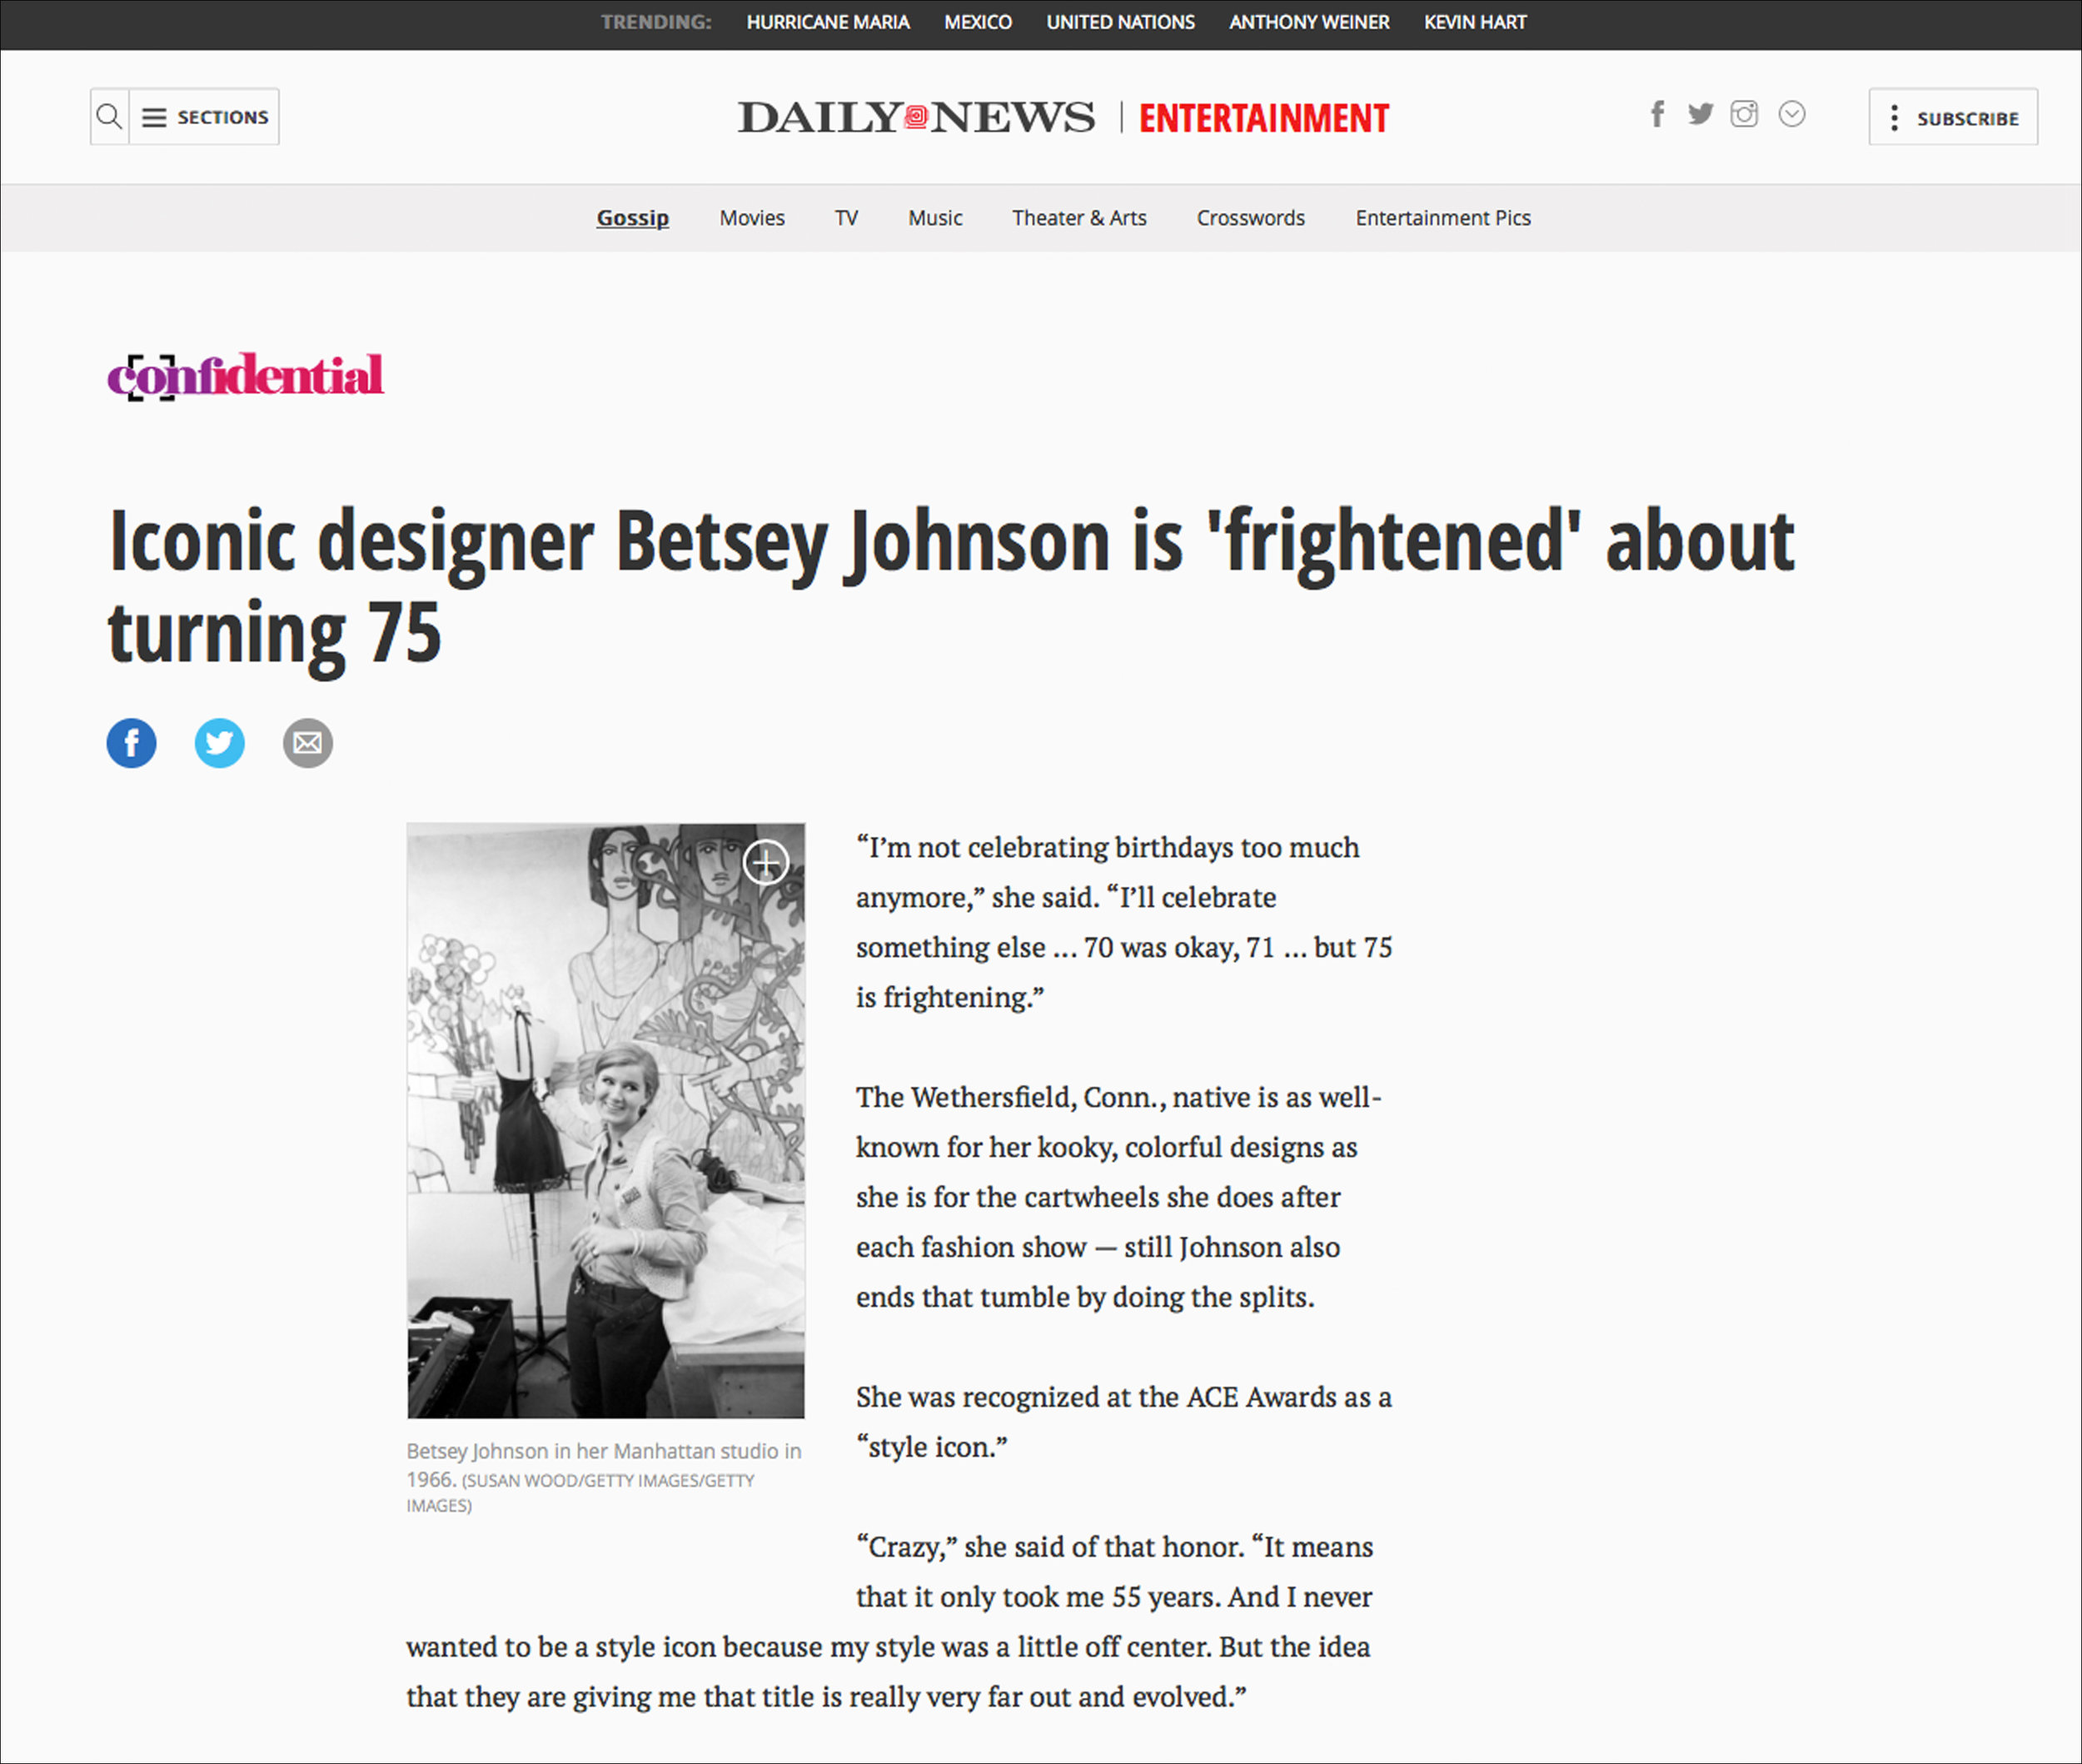 Betsey-Johnson-in-The-Daily-News.jpg